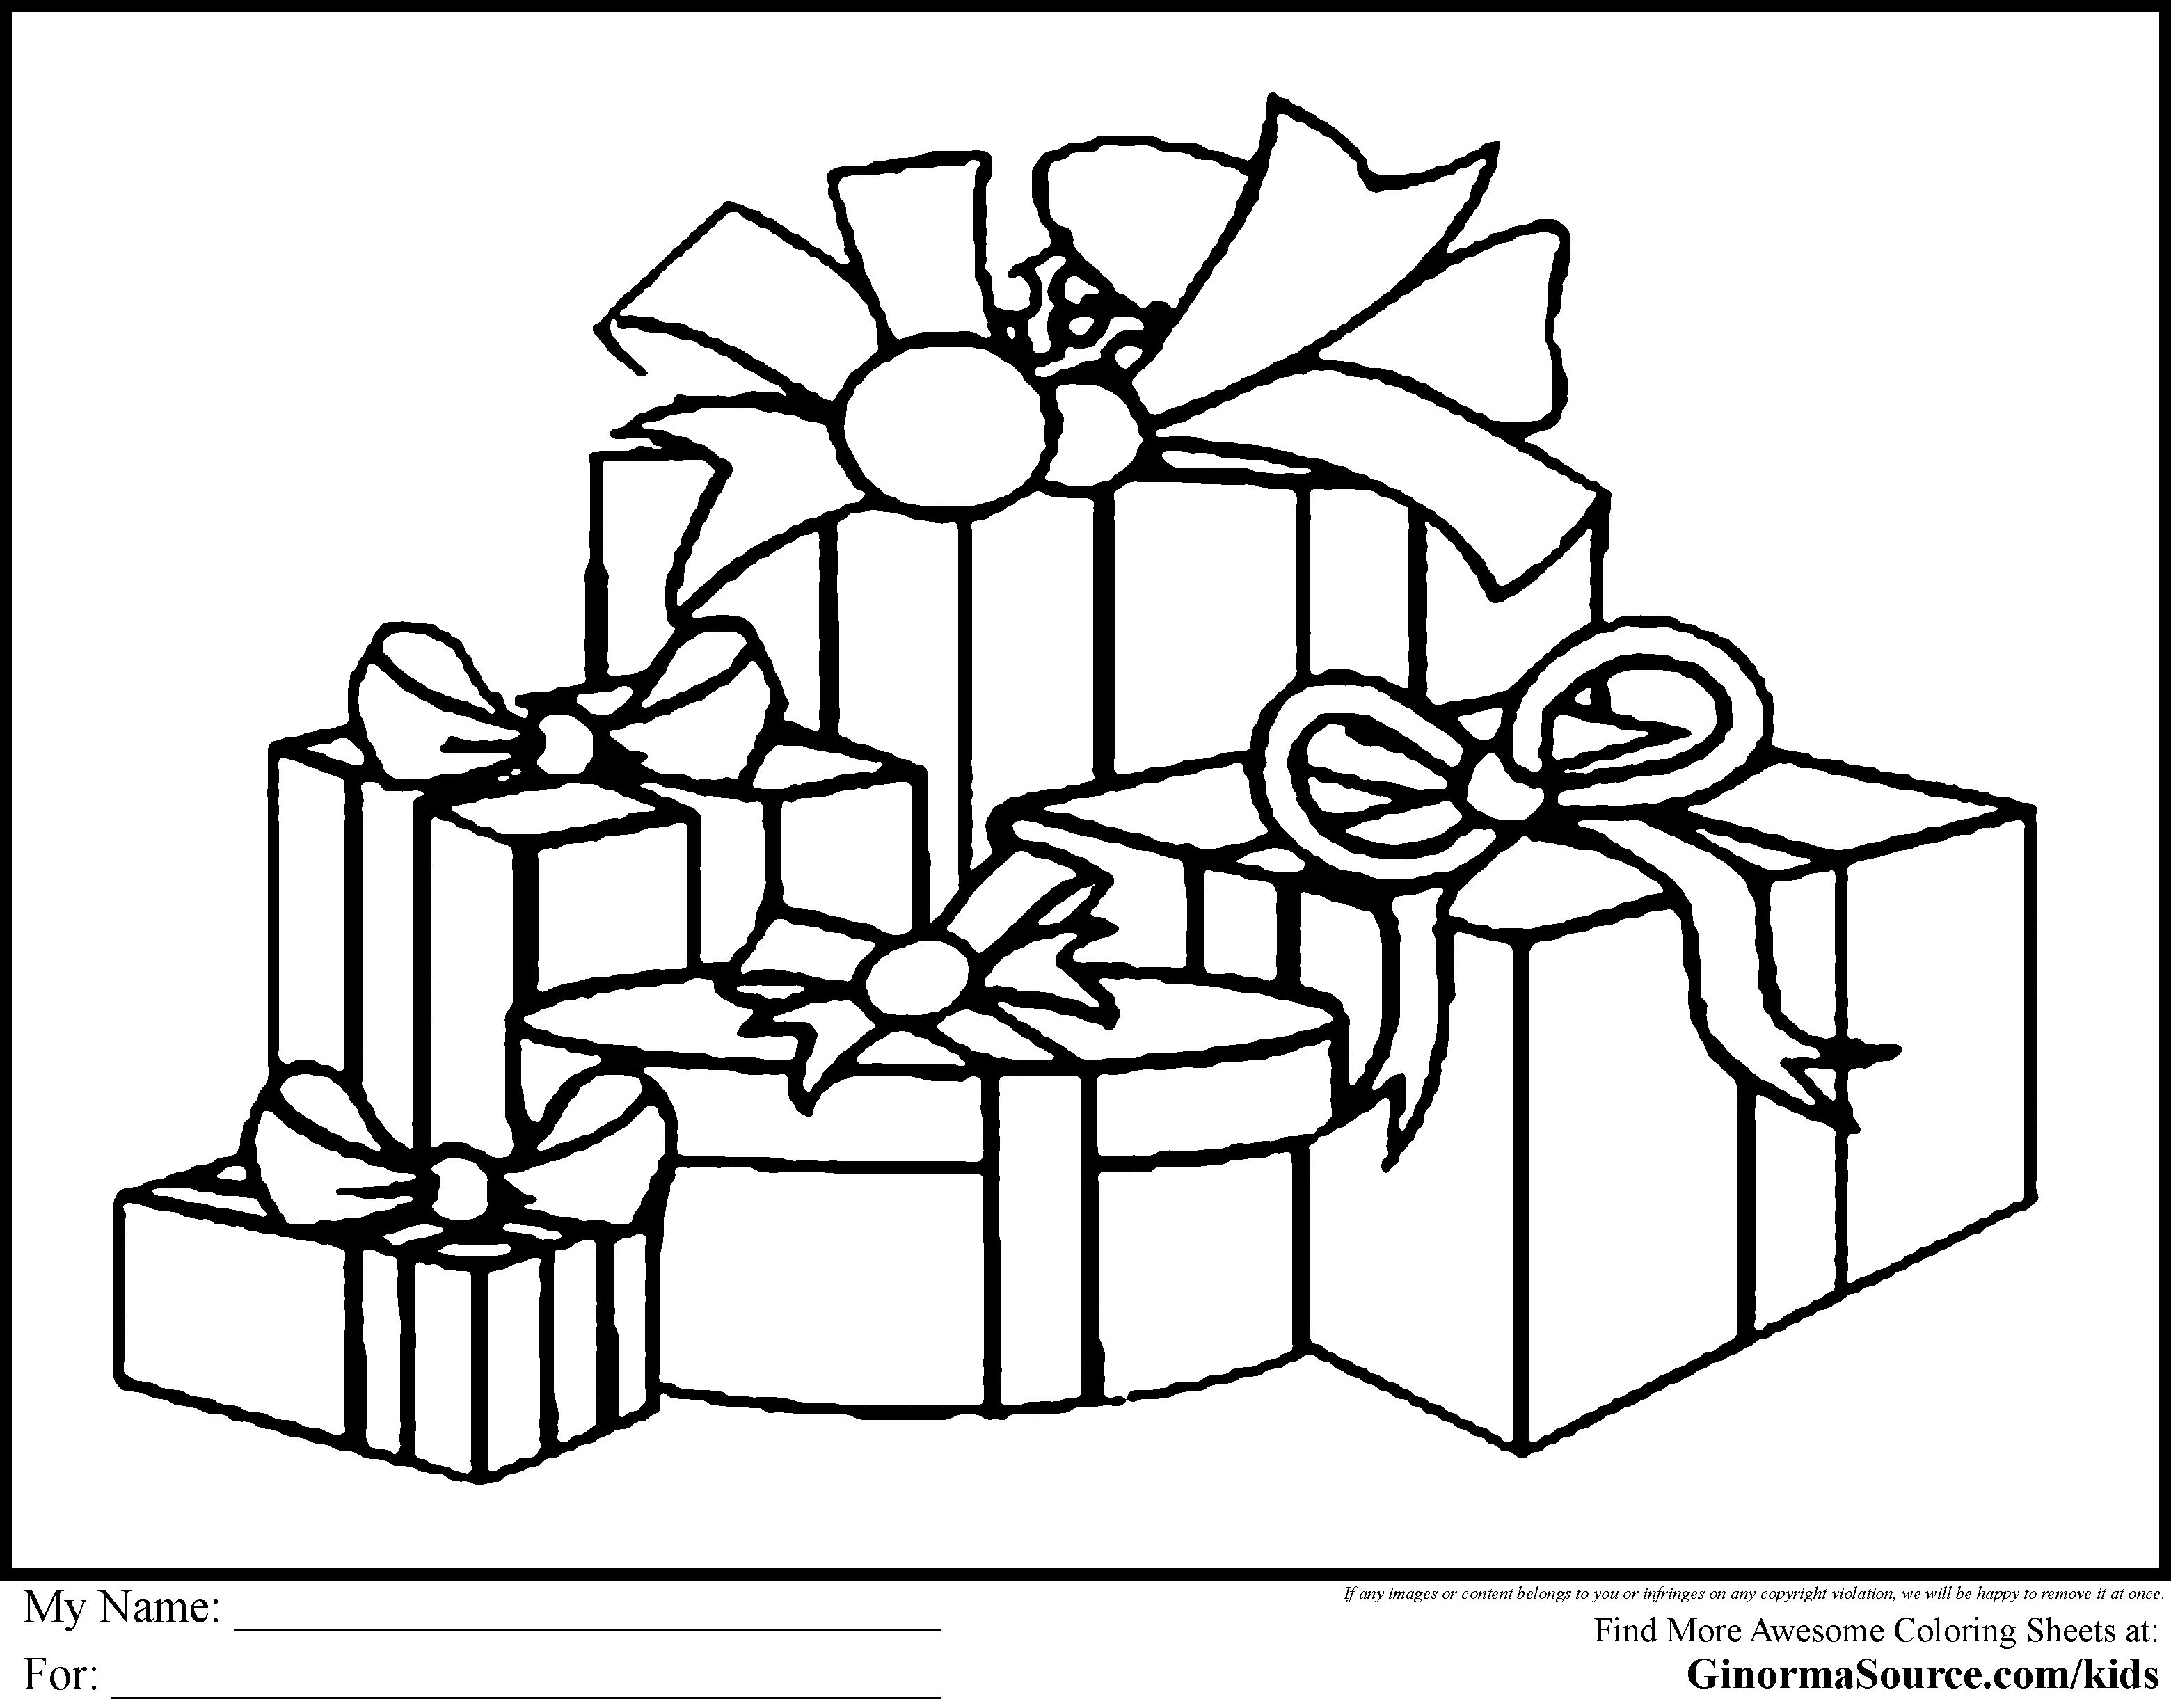 Merry Christmas Teacher Coloring Pages With Gifts Printable Fun For Throughout Animage Me